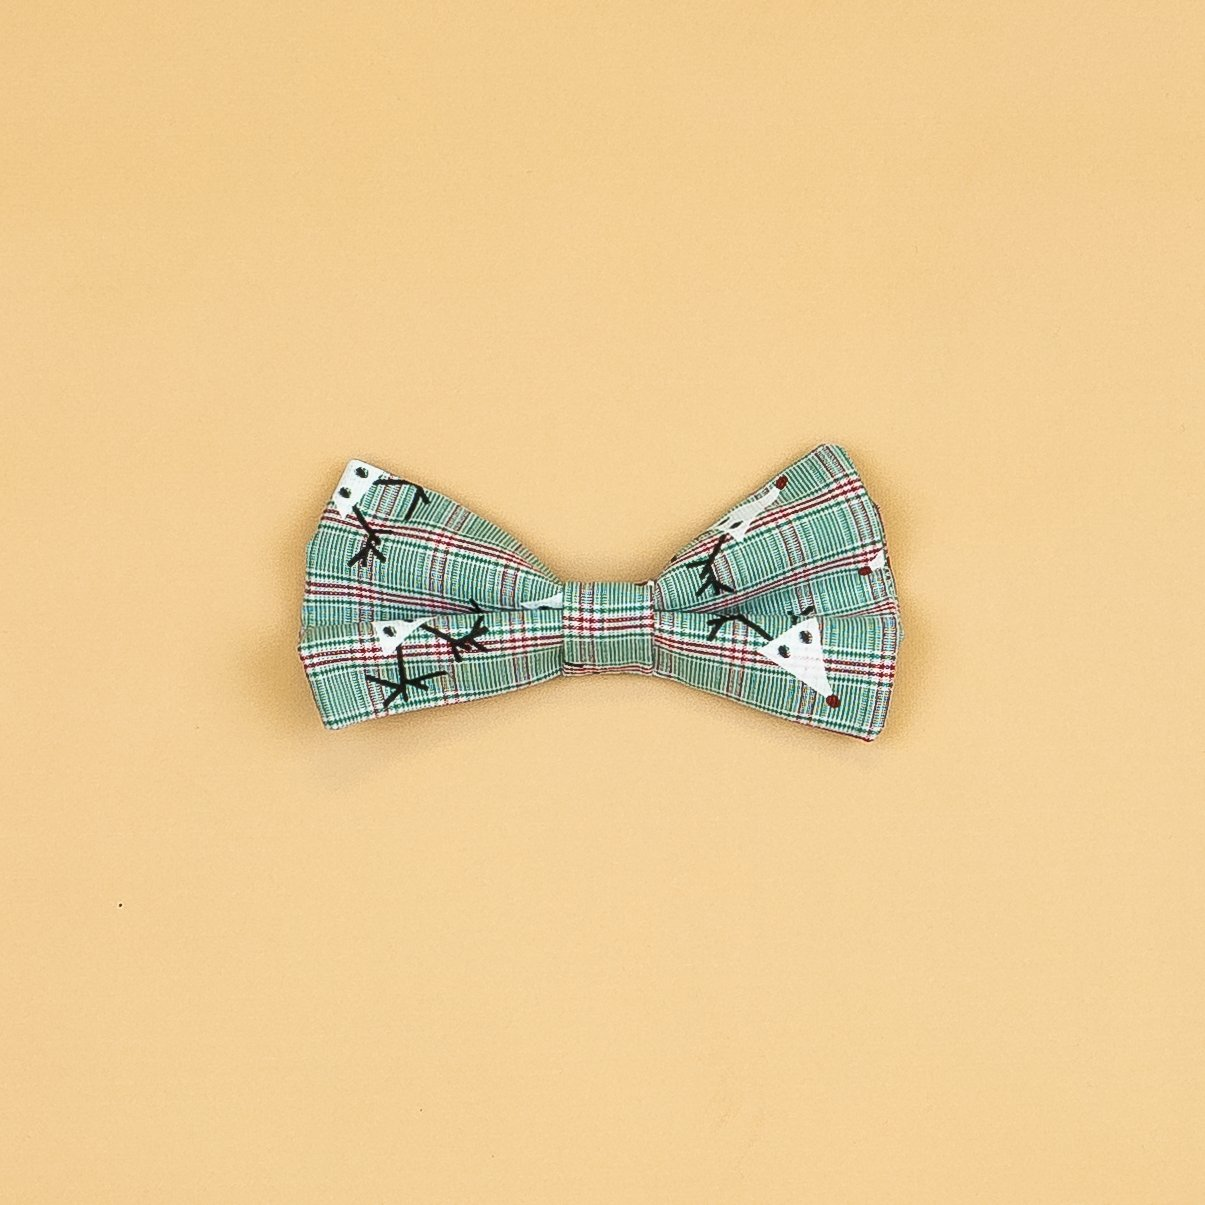 Cuddle Sleep Dream Ties Reindeer Plaid Snap-On Bowtie